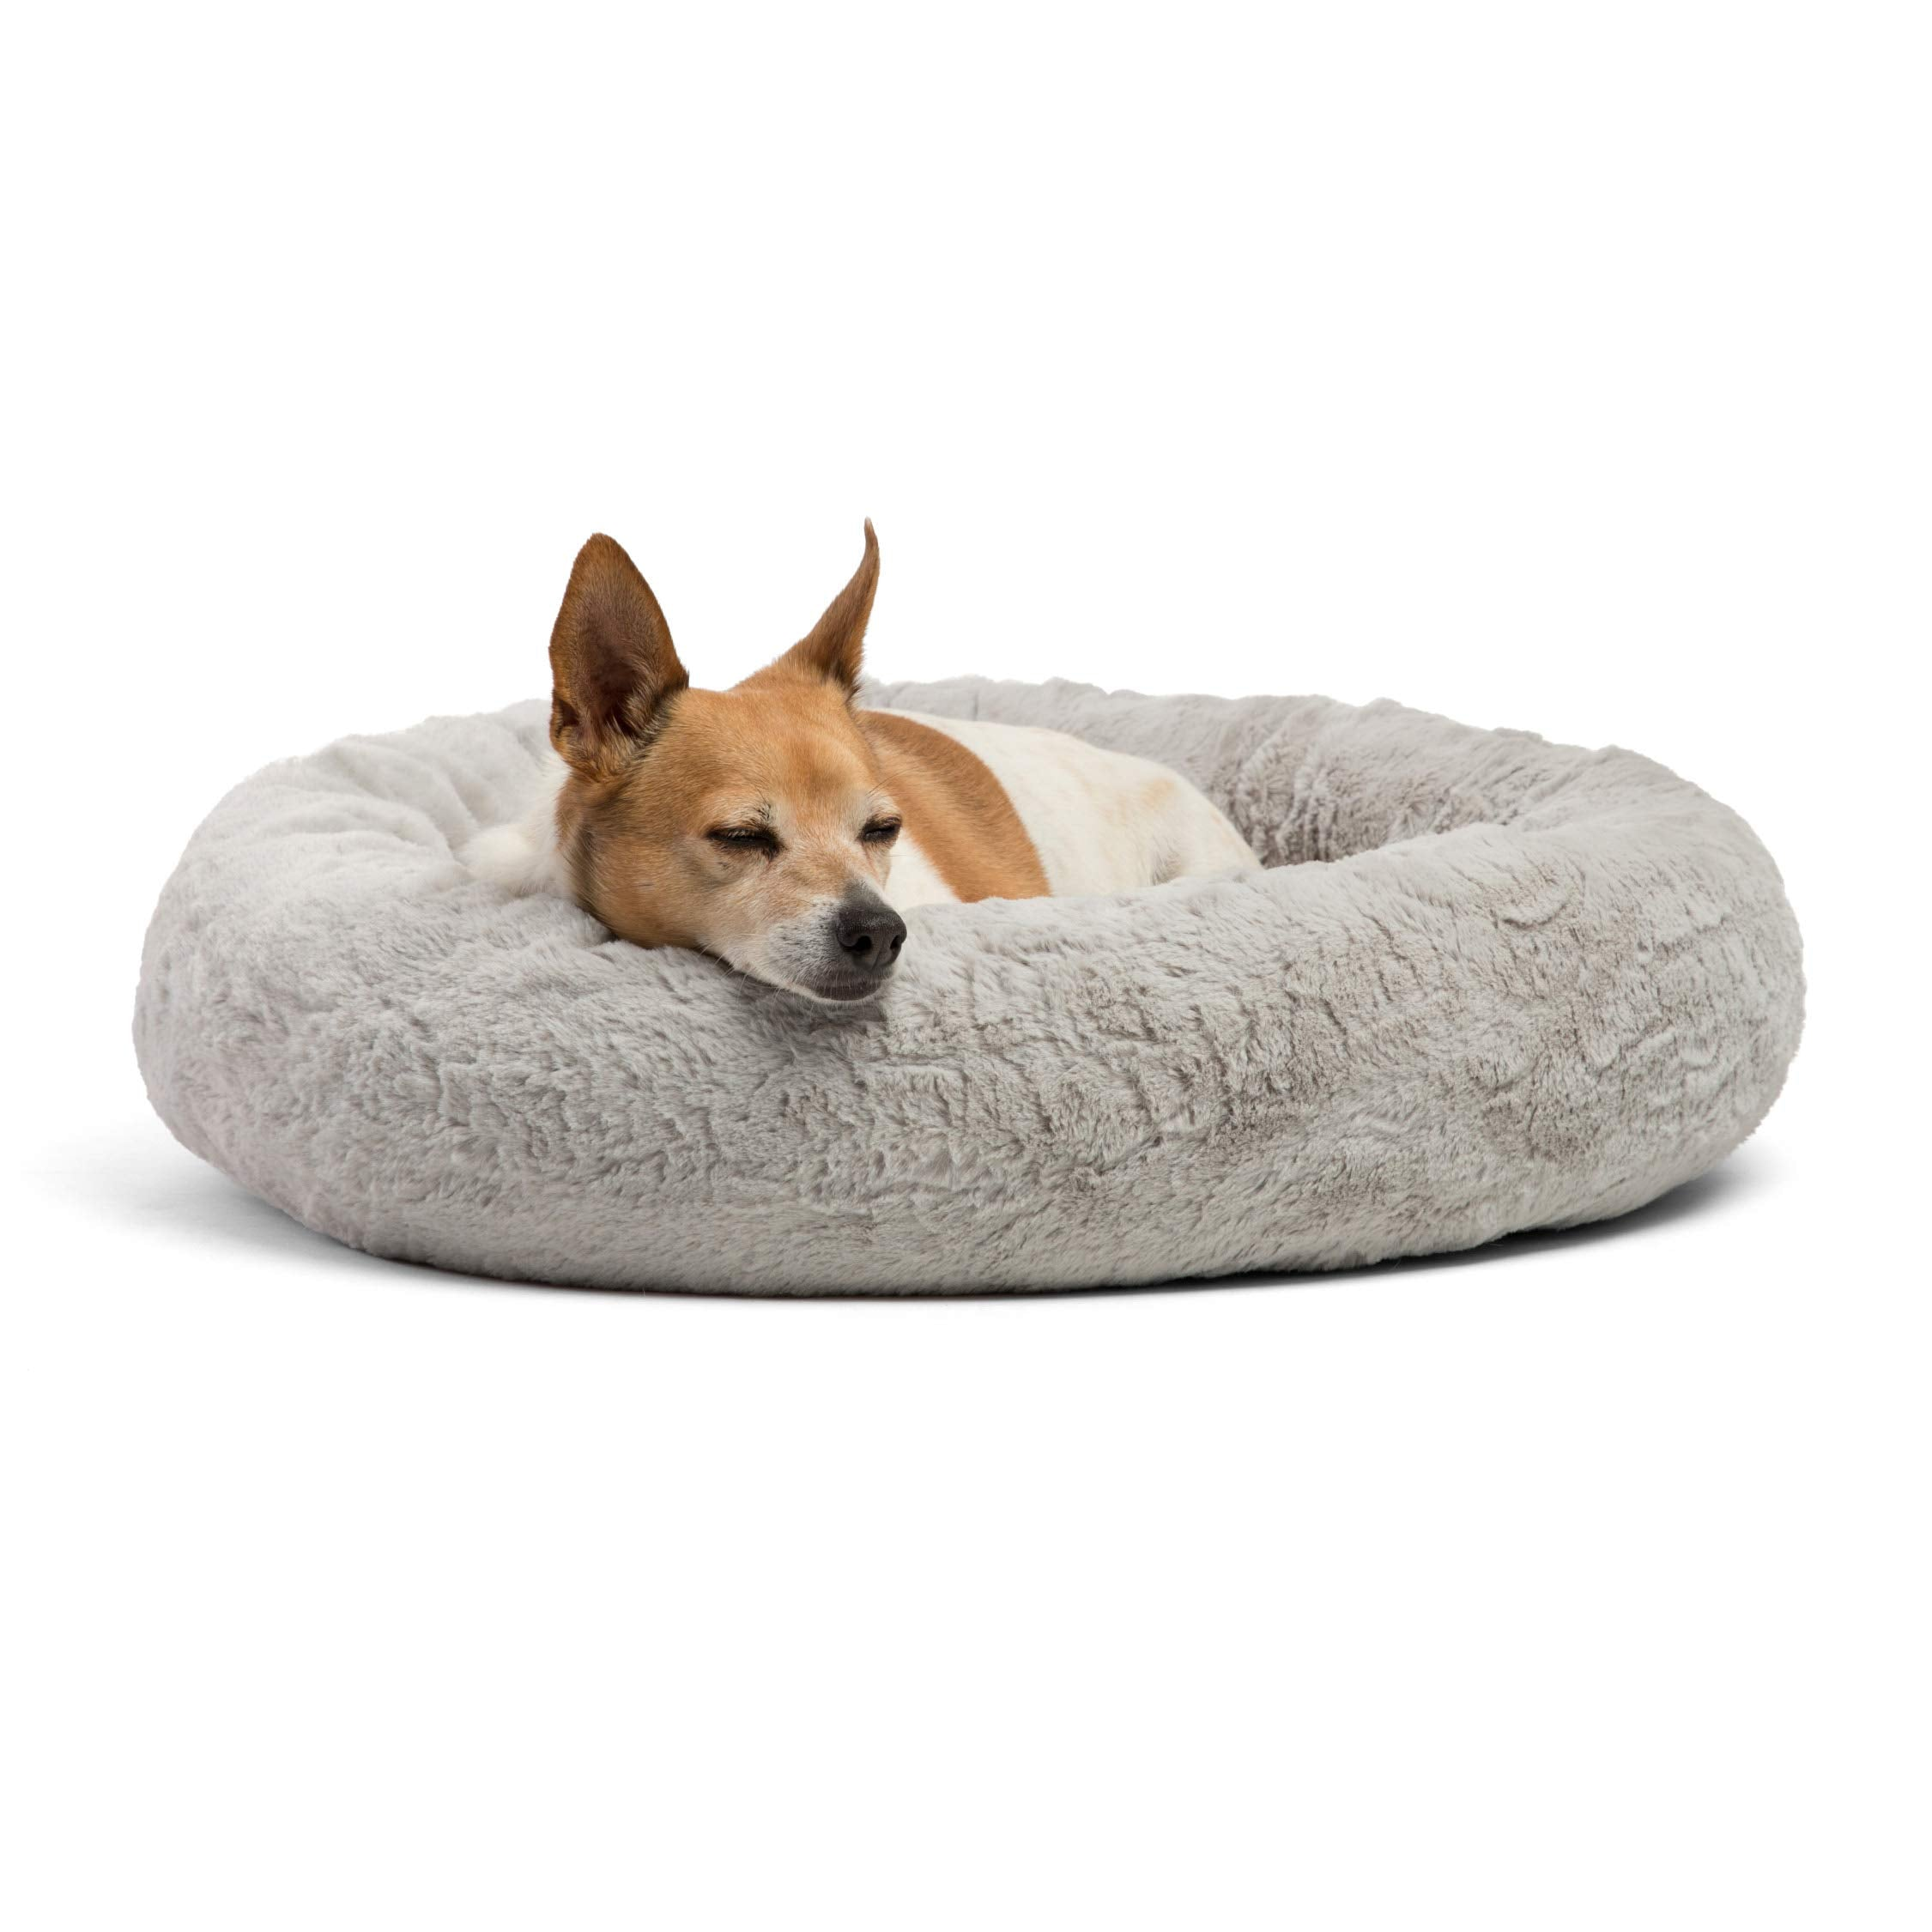 Best Friends by Sheri Luxury Faux Fur Donut Cuddler Cushion Bed, Orthopedic Relief